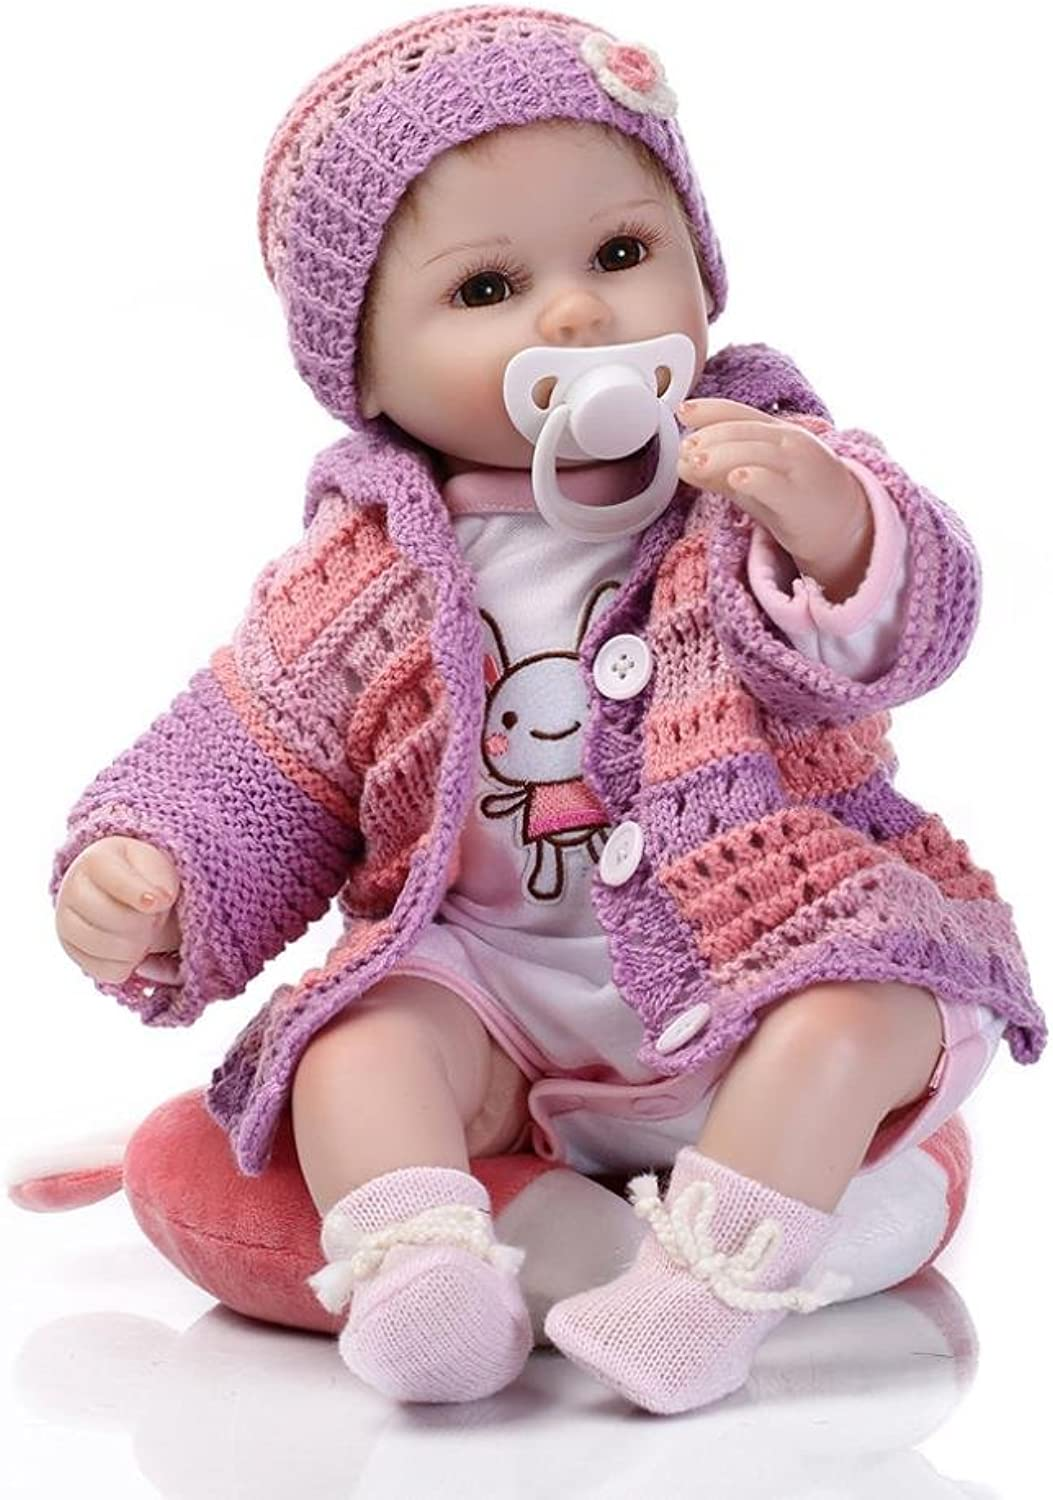 Baby Doll, Toy Gift for Kids Lifelike Reborn Baby Doll Kids Girl Playmate Birthday Gift (40CM)